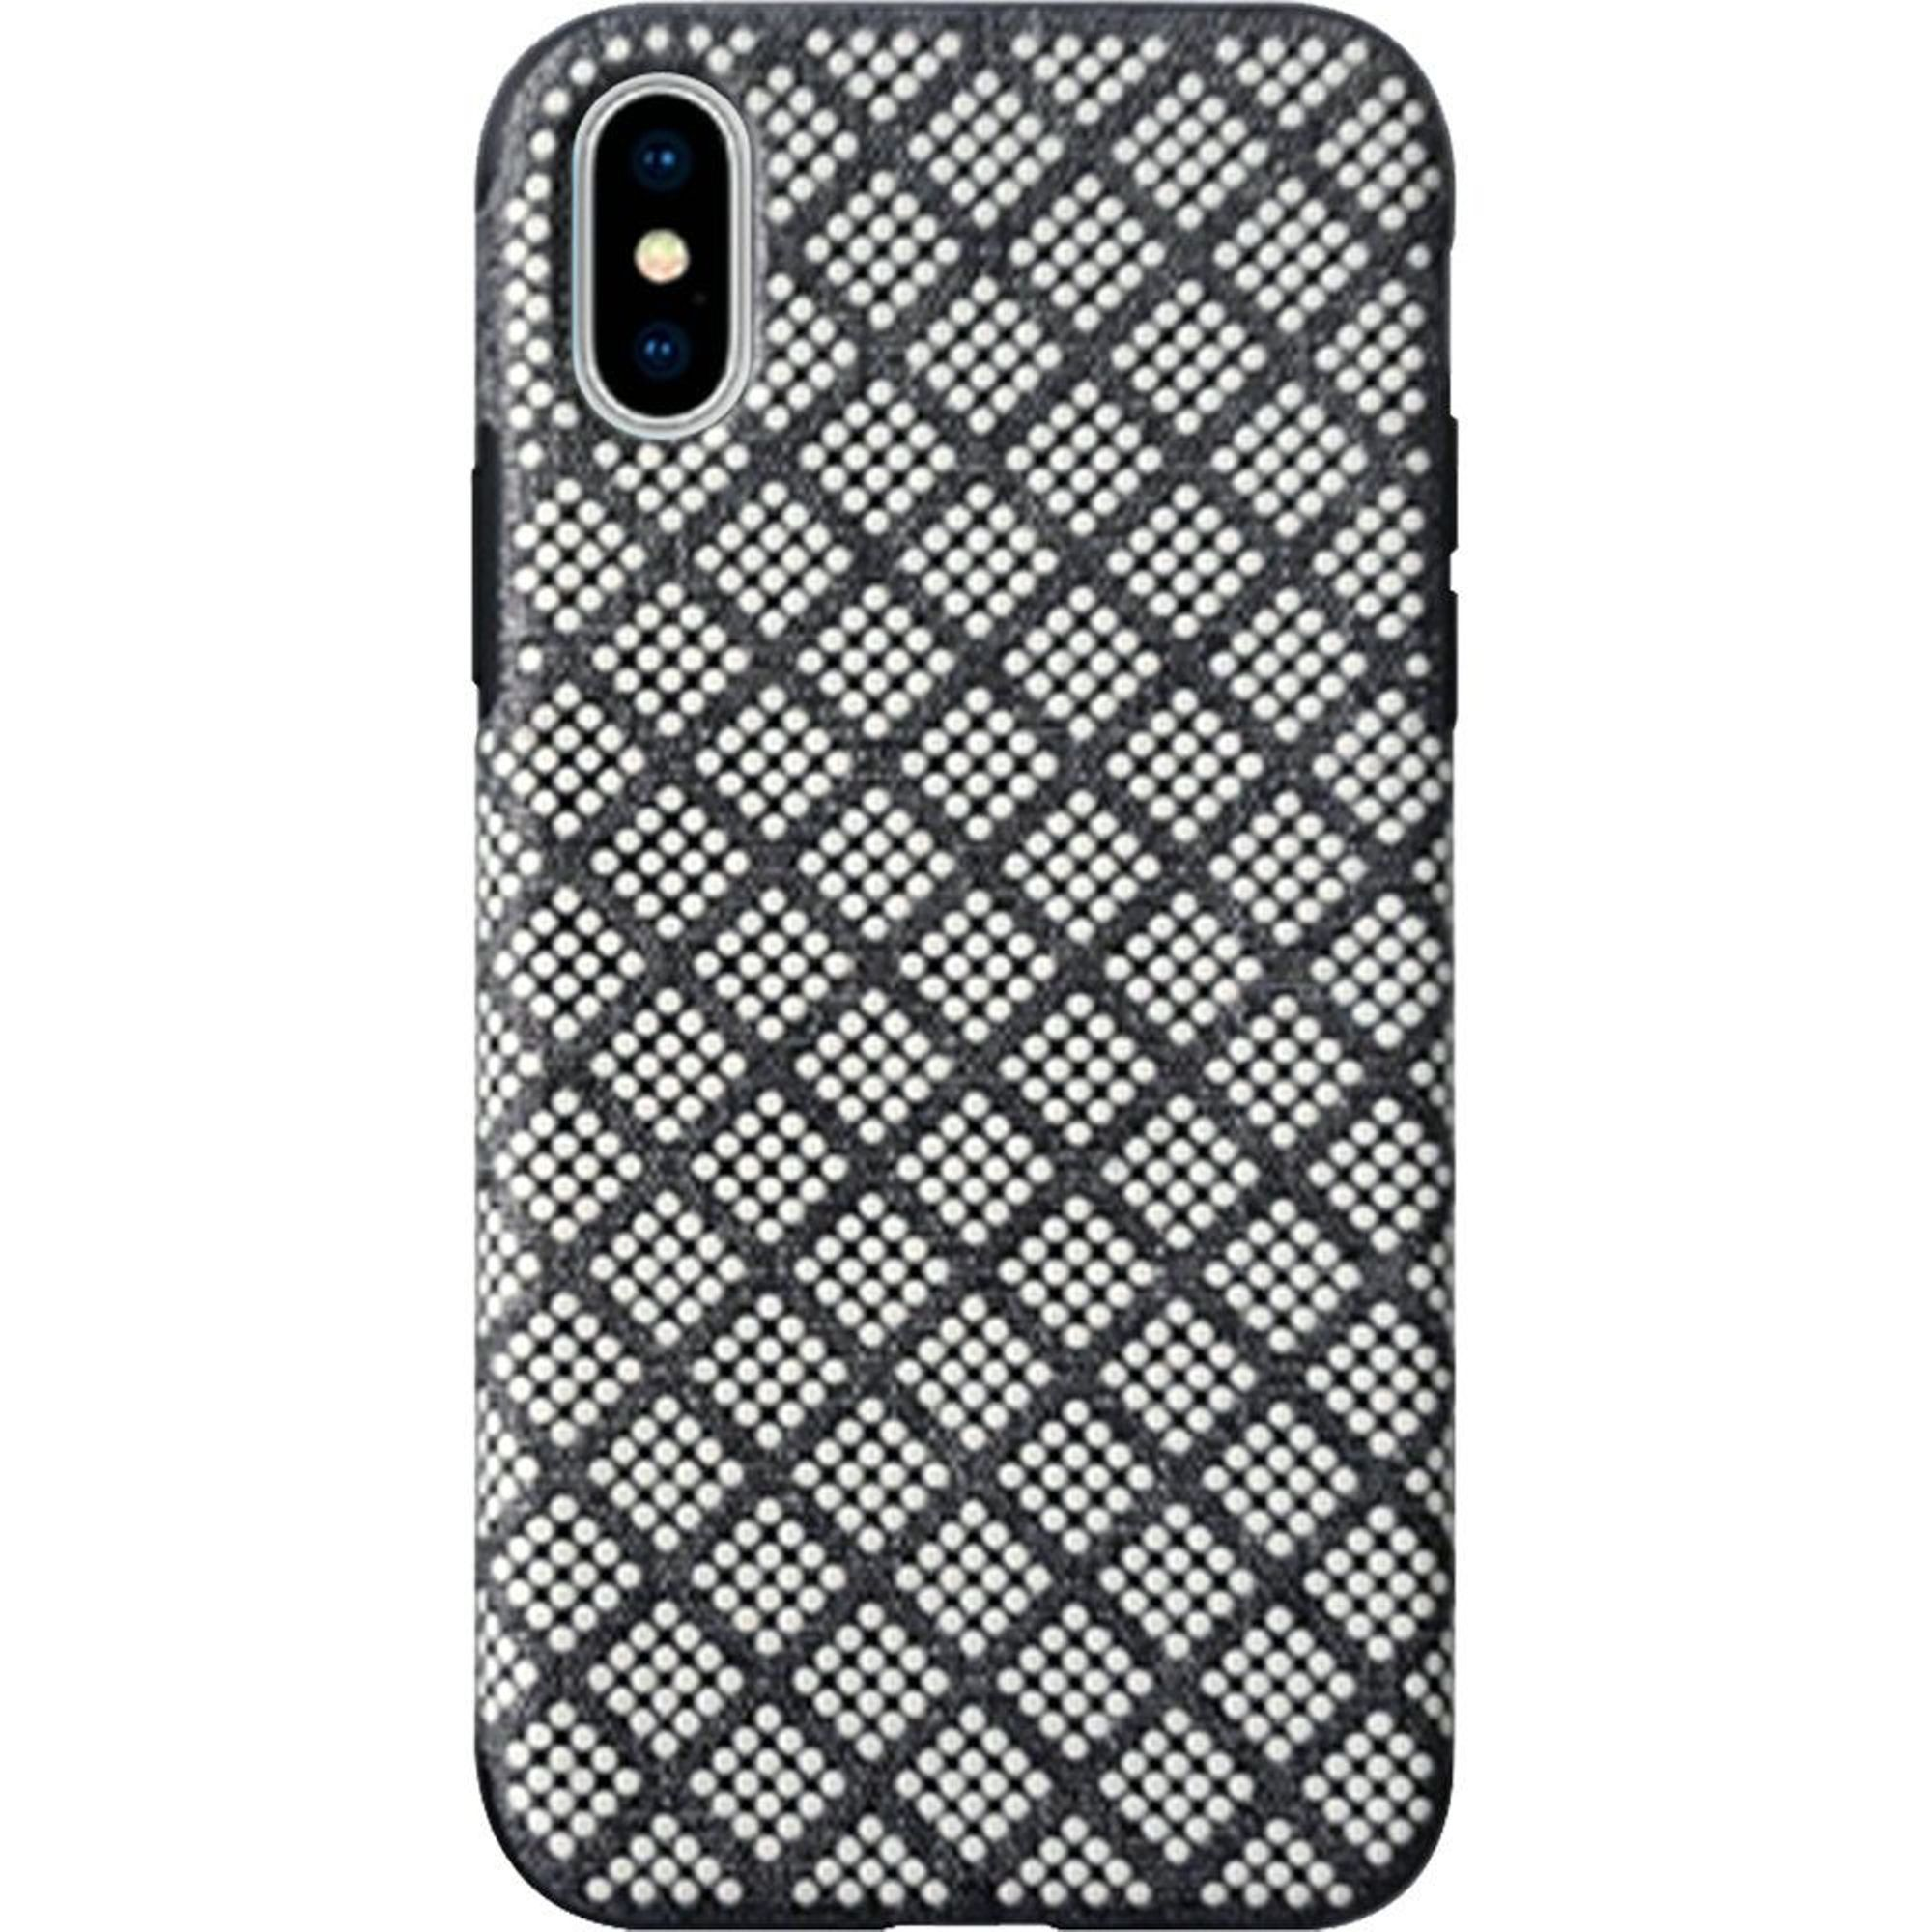 Apple iPhone XS Max Case, by Insten Rasied Dots Hard Plastic/Soft TPU Rubber Dual Layer [Shock Absorbing] Hybrid Fabric Case Cover For Apple iPhone XS Max